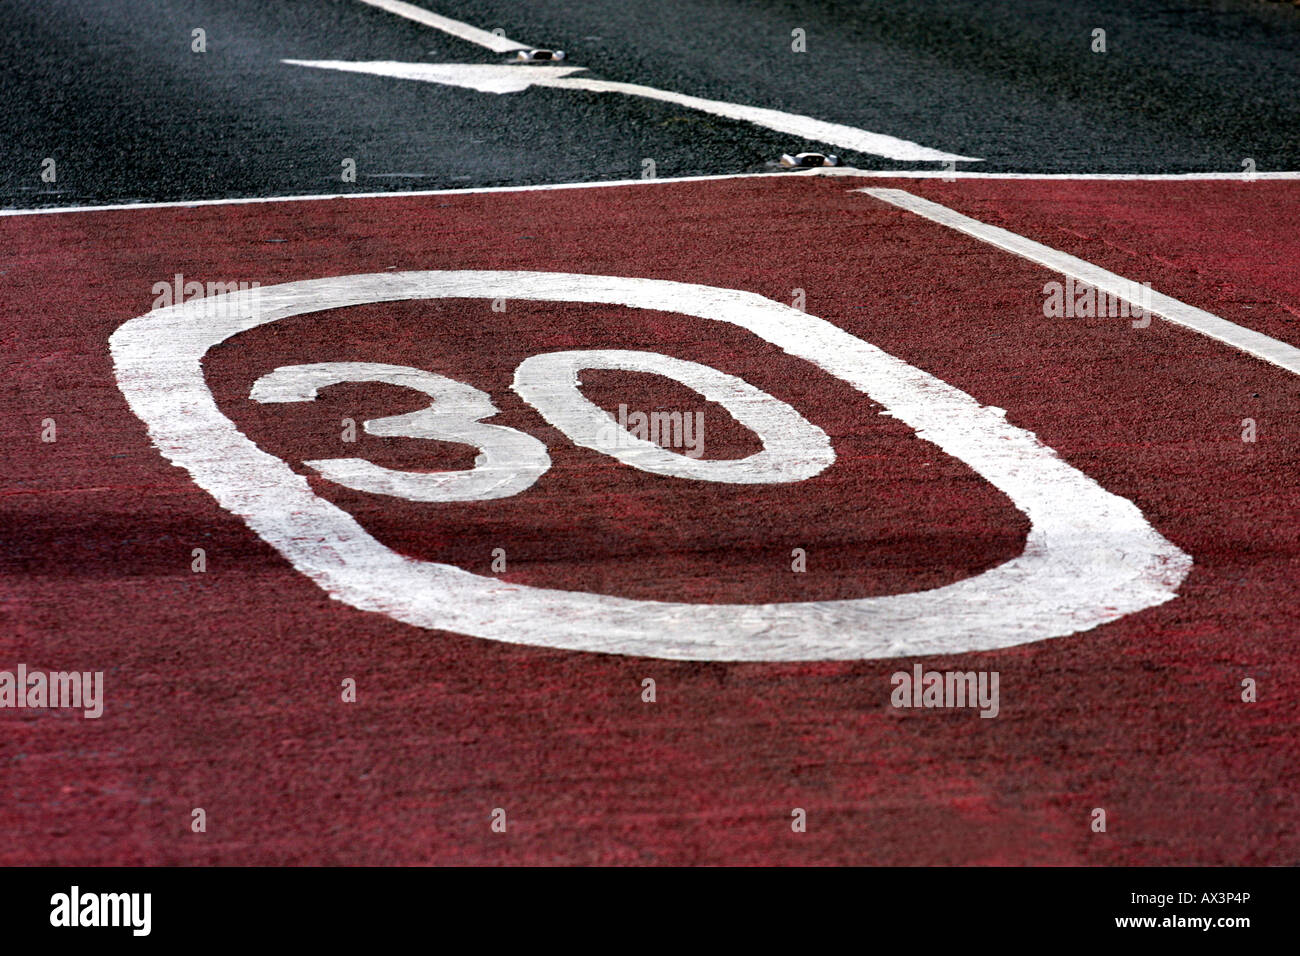 30 mph sign on road - Stock Image